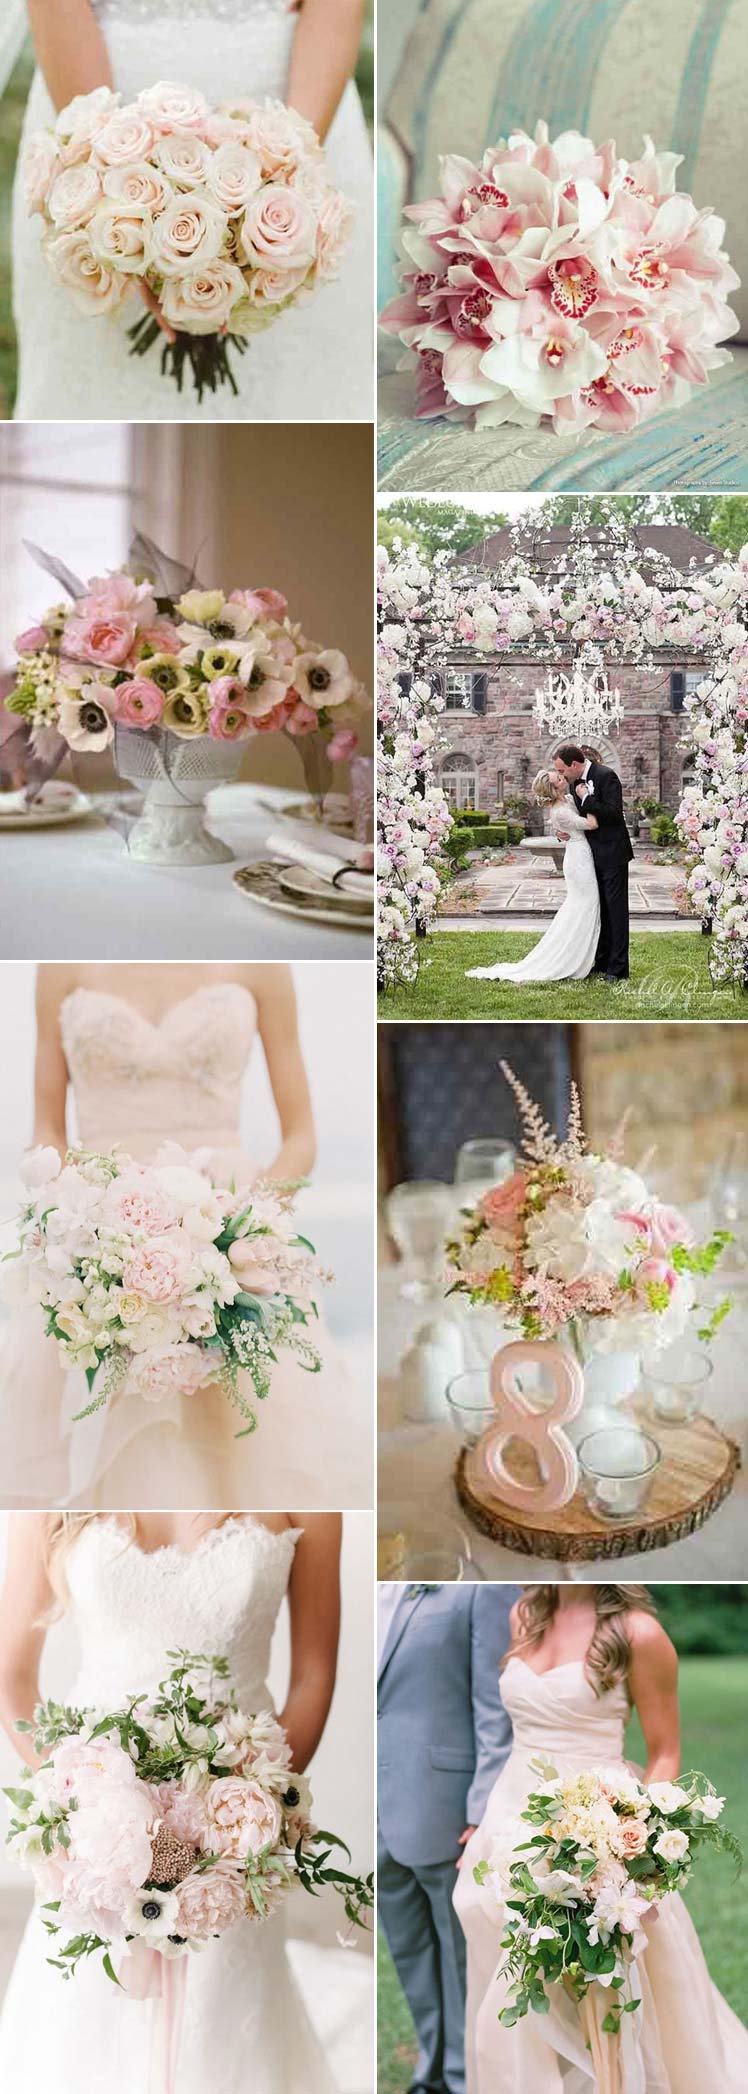 pretty blush wedding flowers